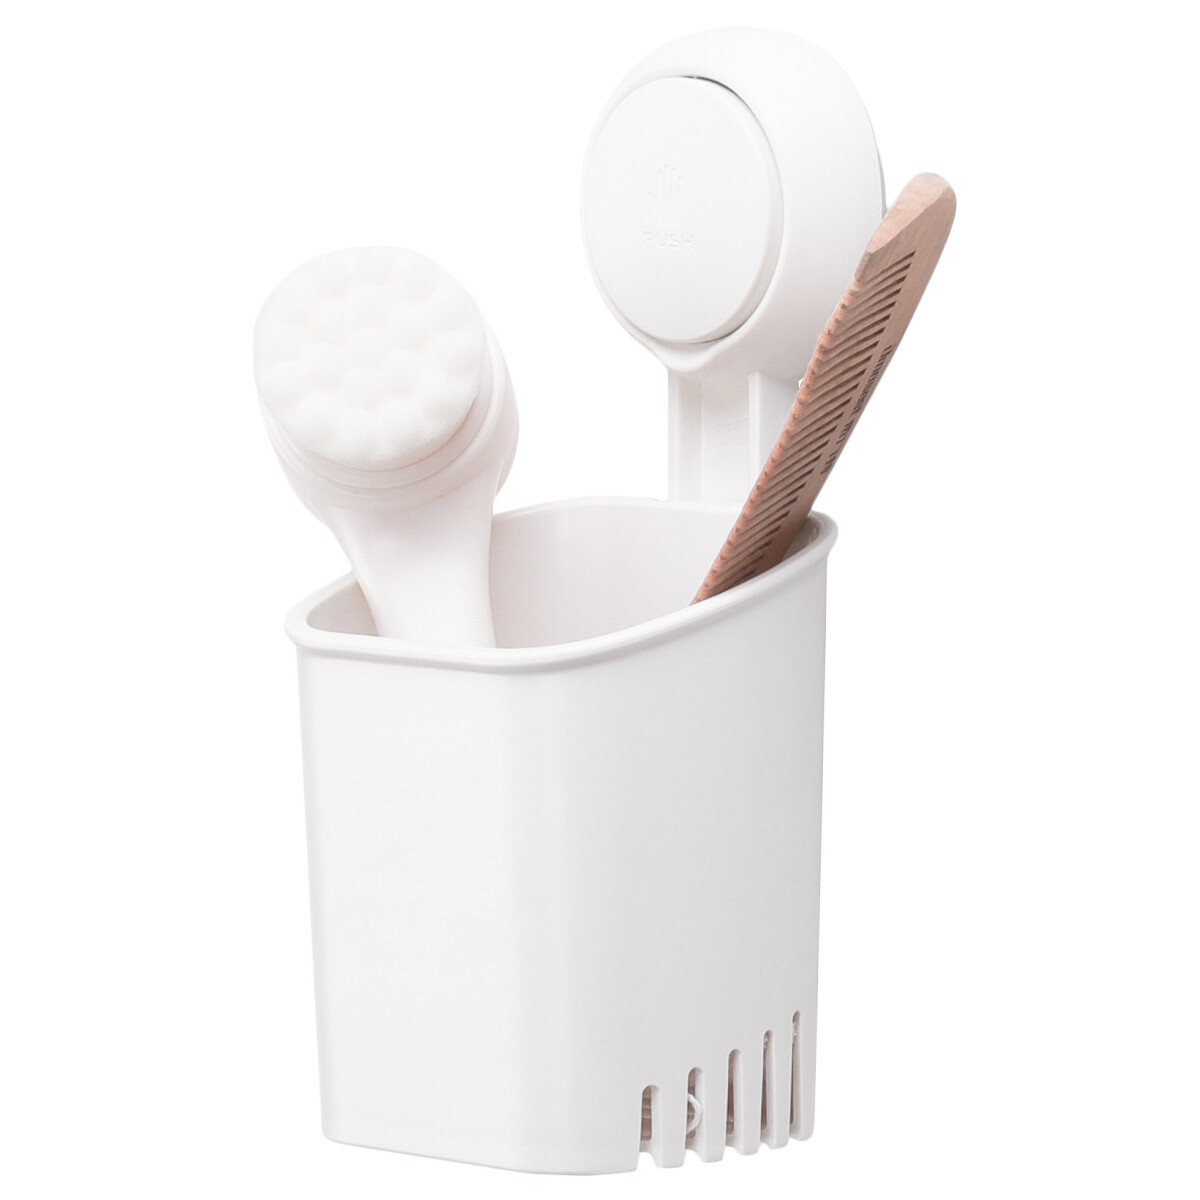 MYKE Suction Cup Toothbrush Holder